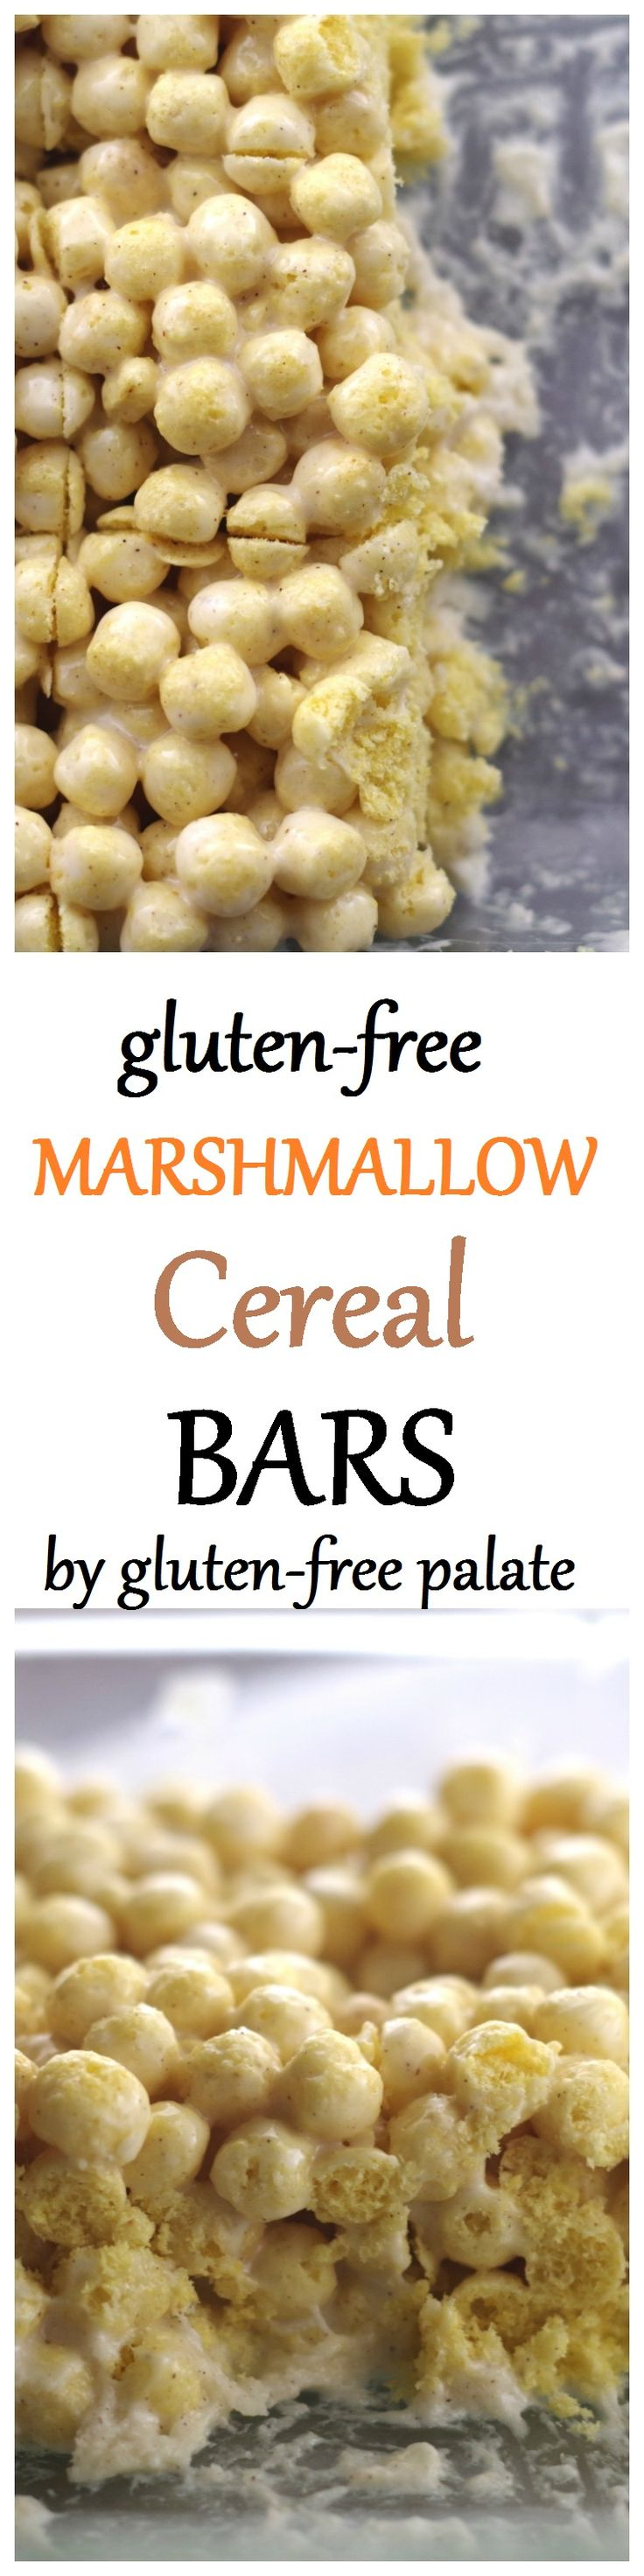 Forget regular krispie treats and savor the delicious flavors of butter, vanilla, and cinnamon in these gluten-free marshmallow cereal bars by Gluten-Free Palate.